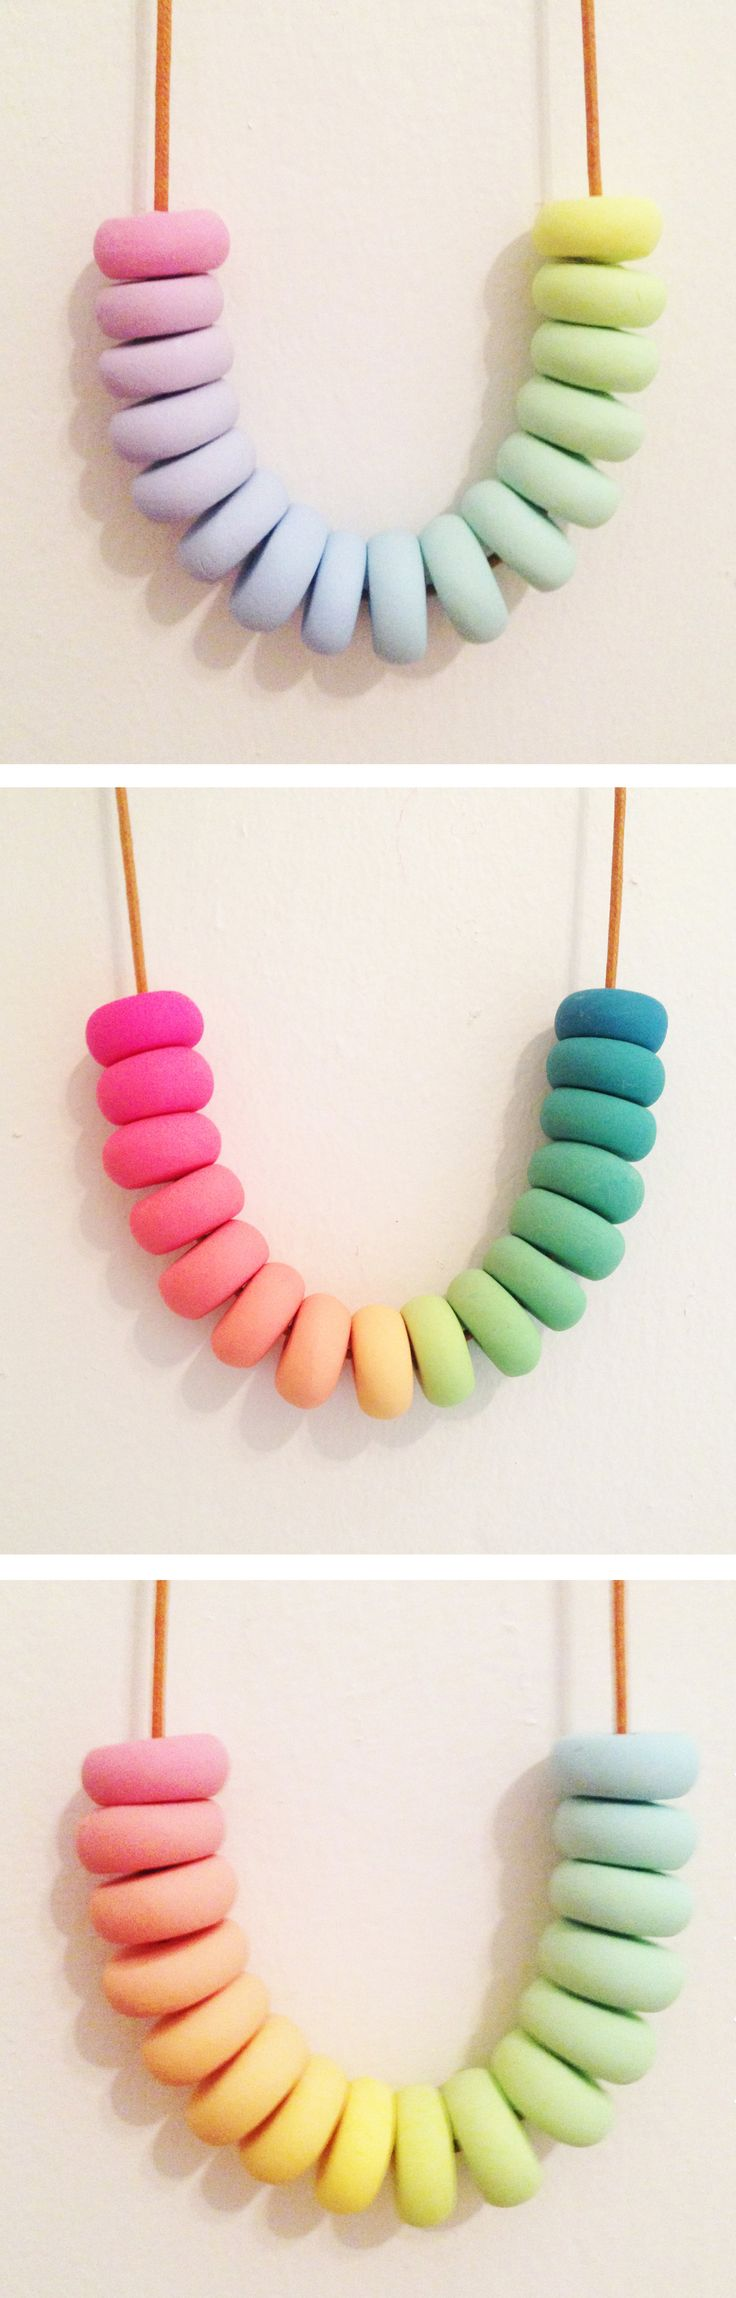 Rainbow Popsicle - Polymer Clay Necklace - Christmas gift - candy minimal - cute - gifts for her - stocking stuffer